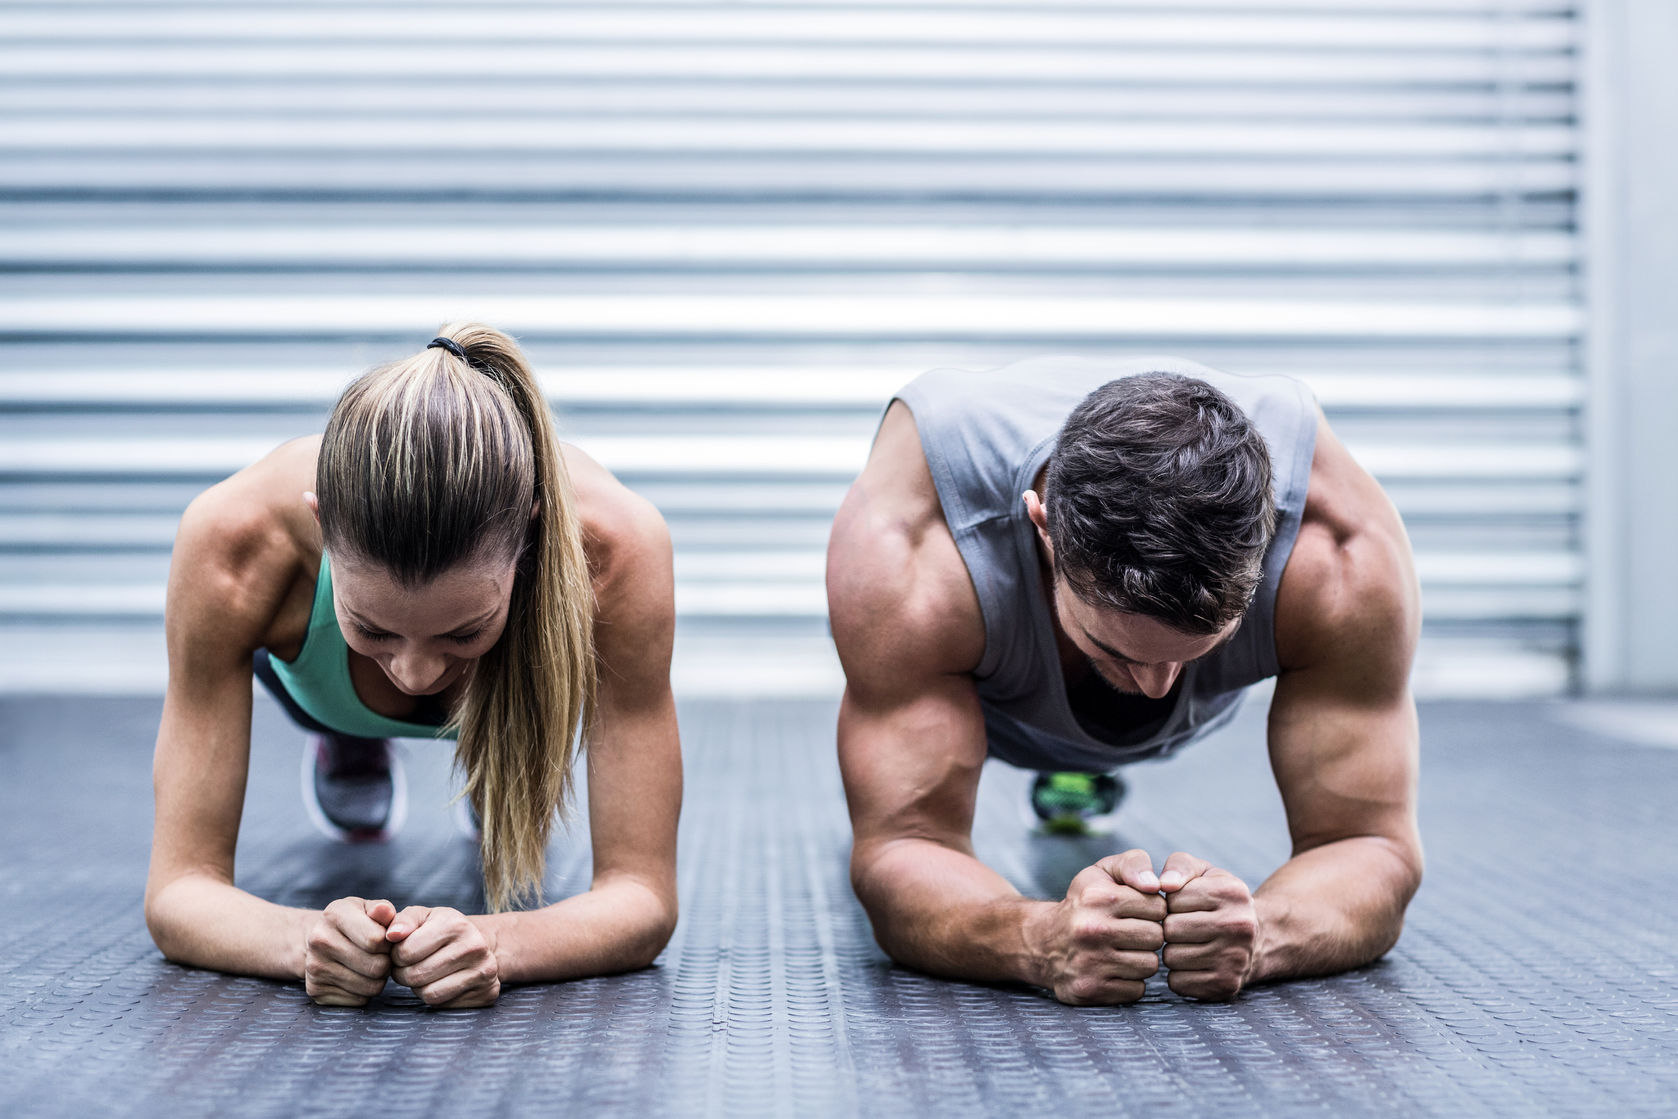 42329549 - front view of a muscular couple doing planking exercises